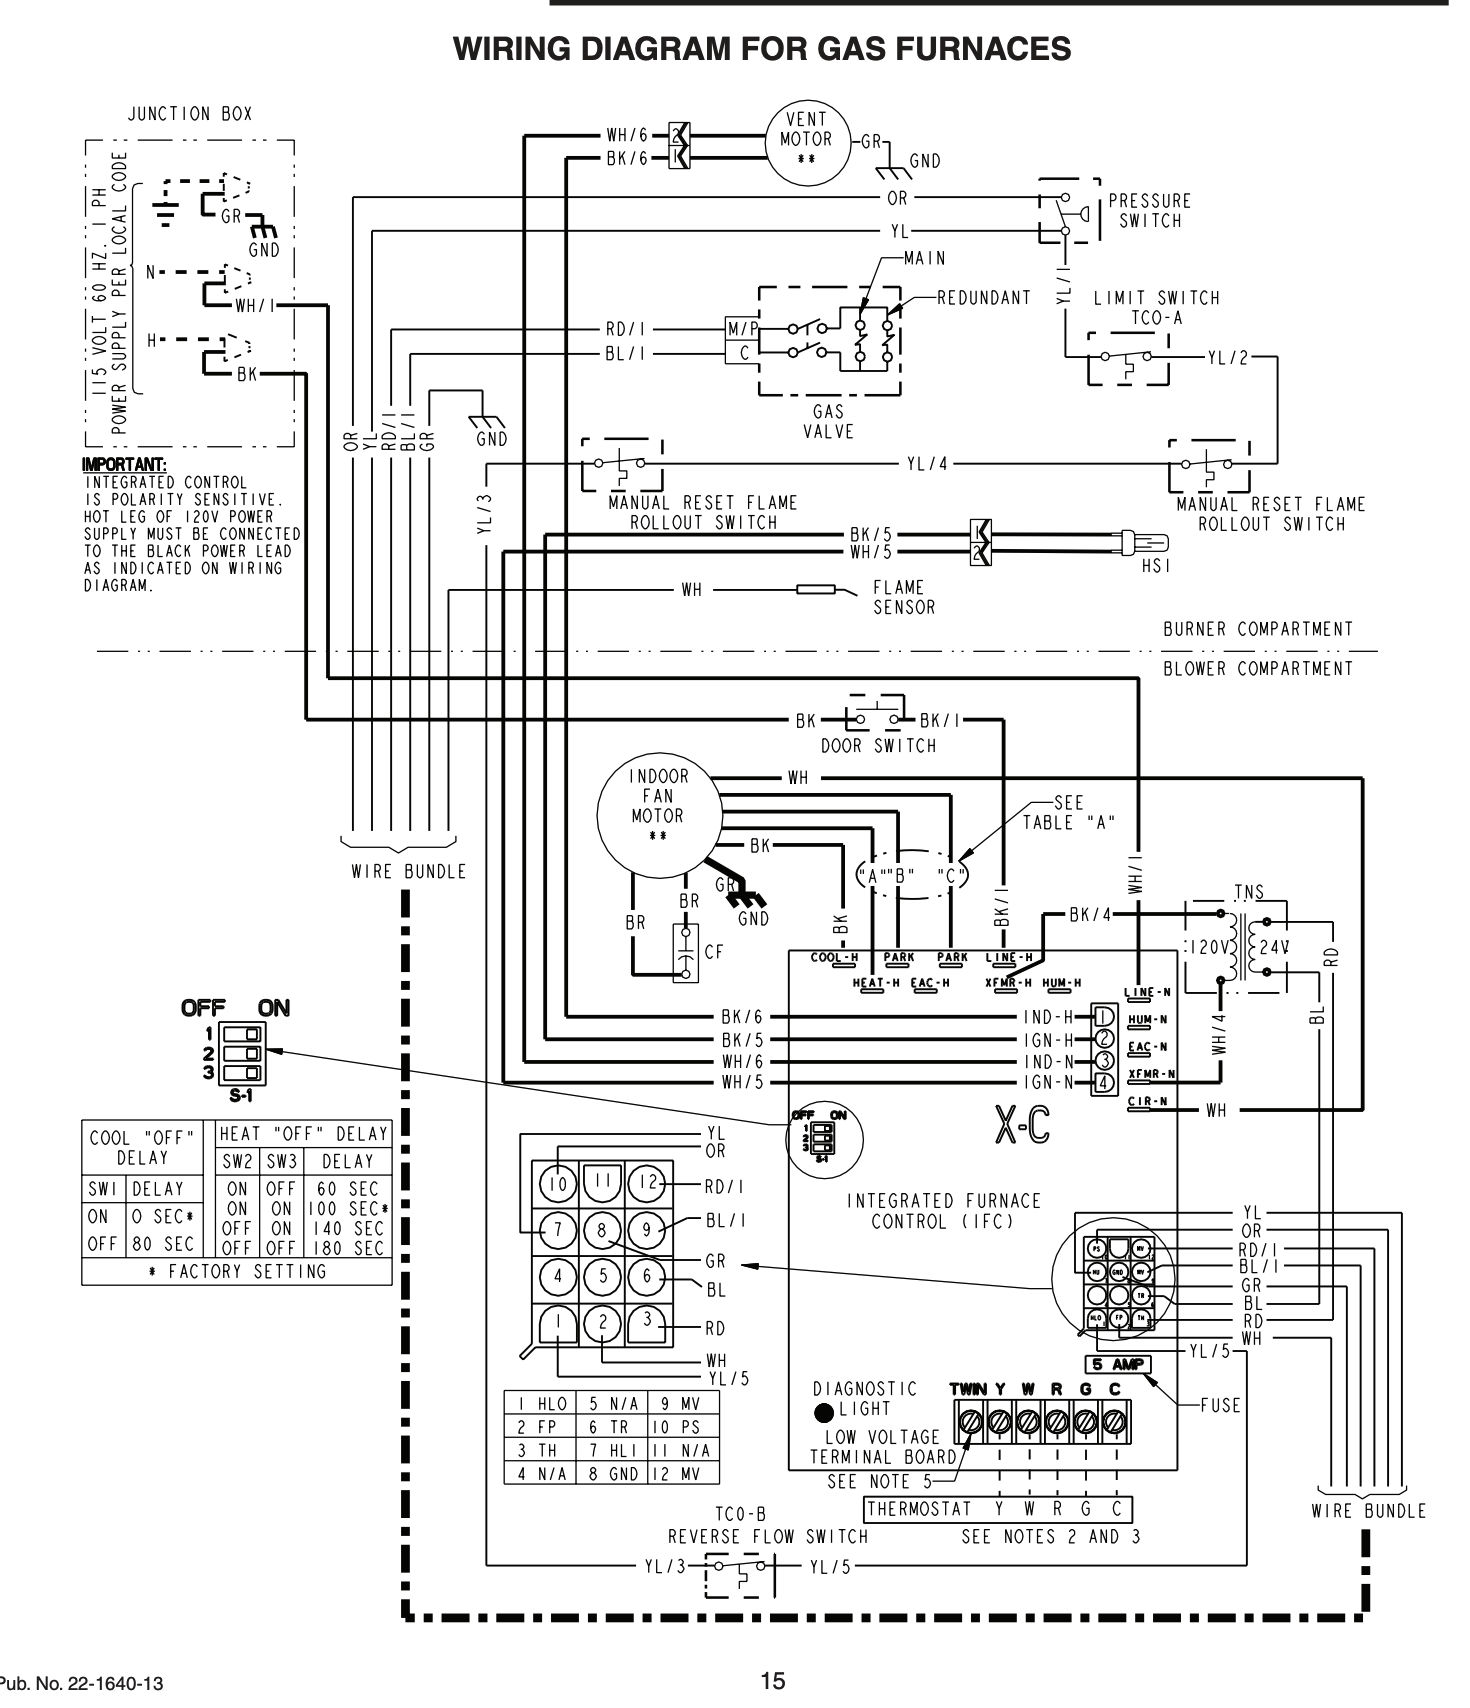 hight resolution of trane condensing unit wiring diagram wiring diagram toolbox trane condensing unit wiring diagram